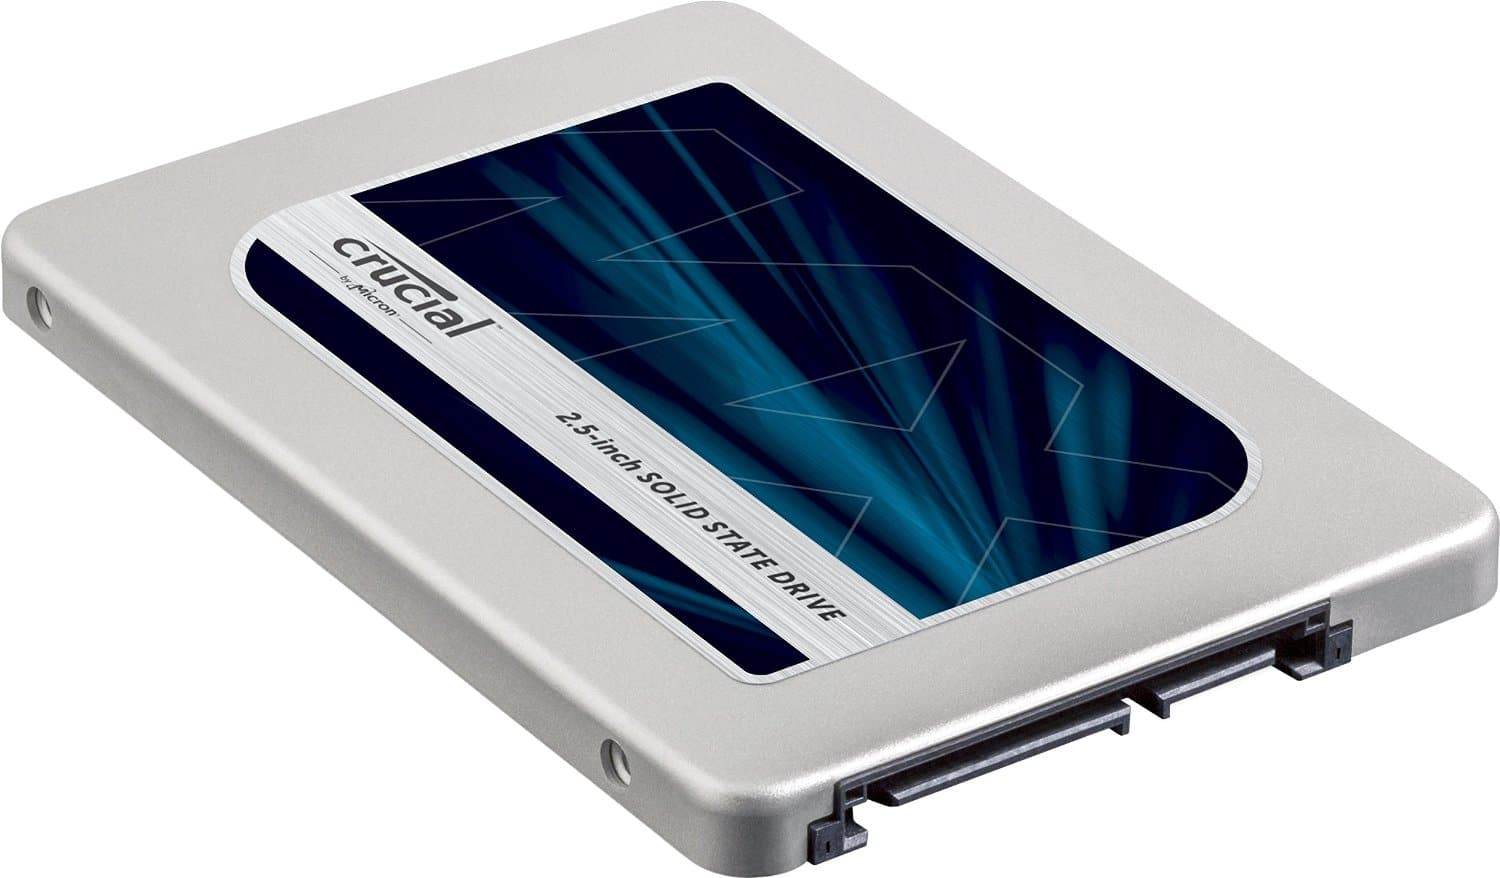 Photo of Knallerpreis: Crucial MX300 750GB SSD für 130 Euro